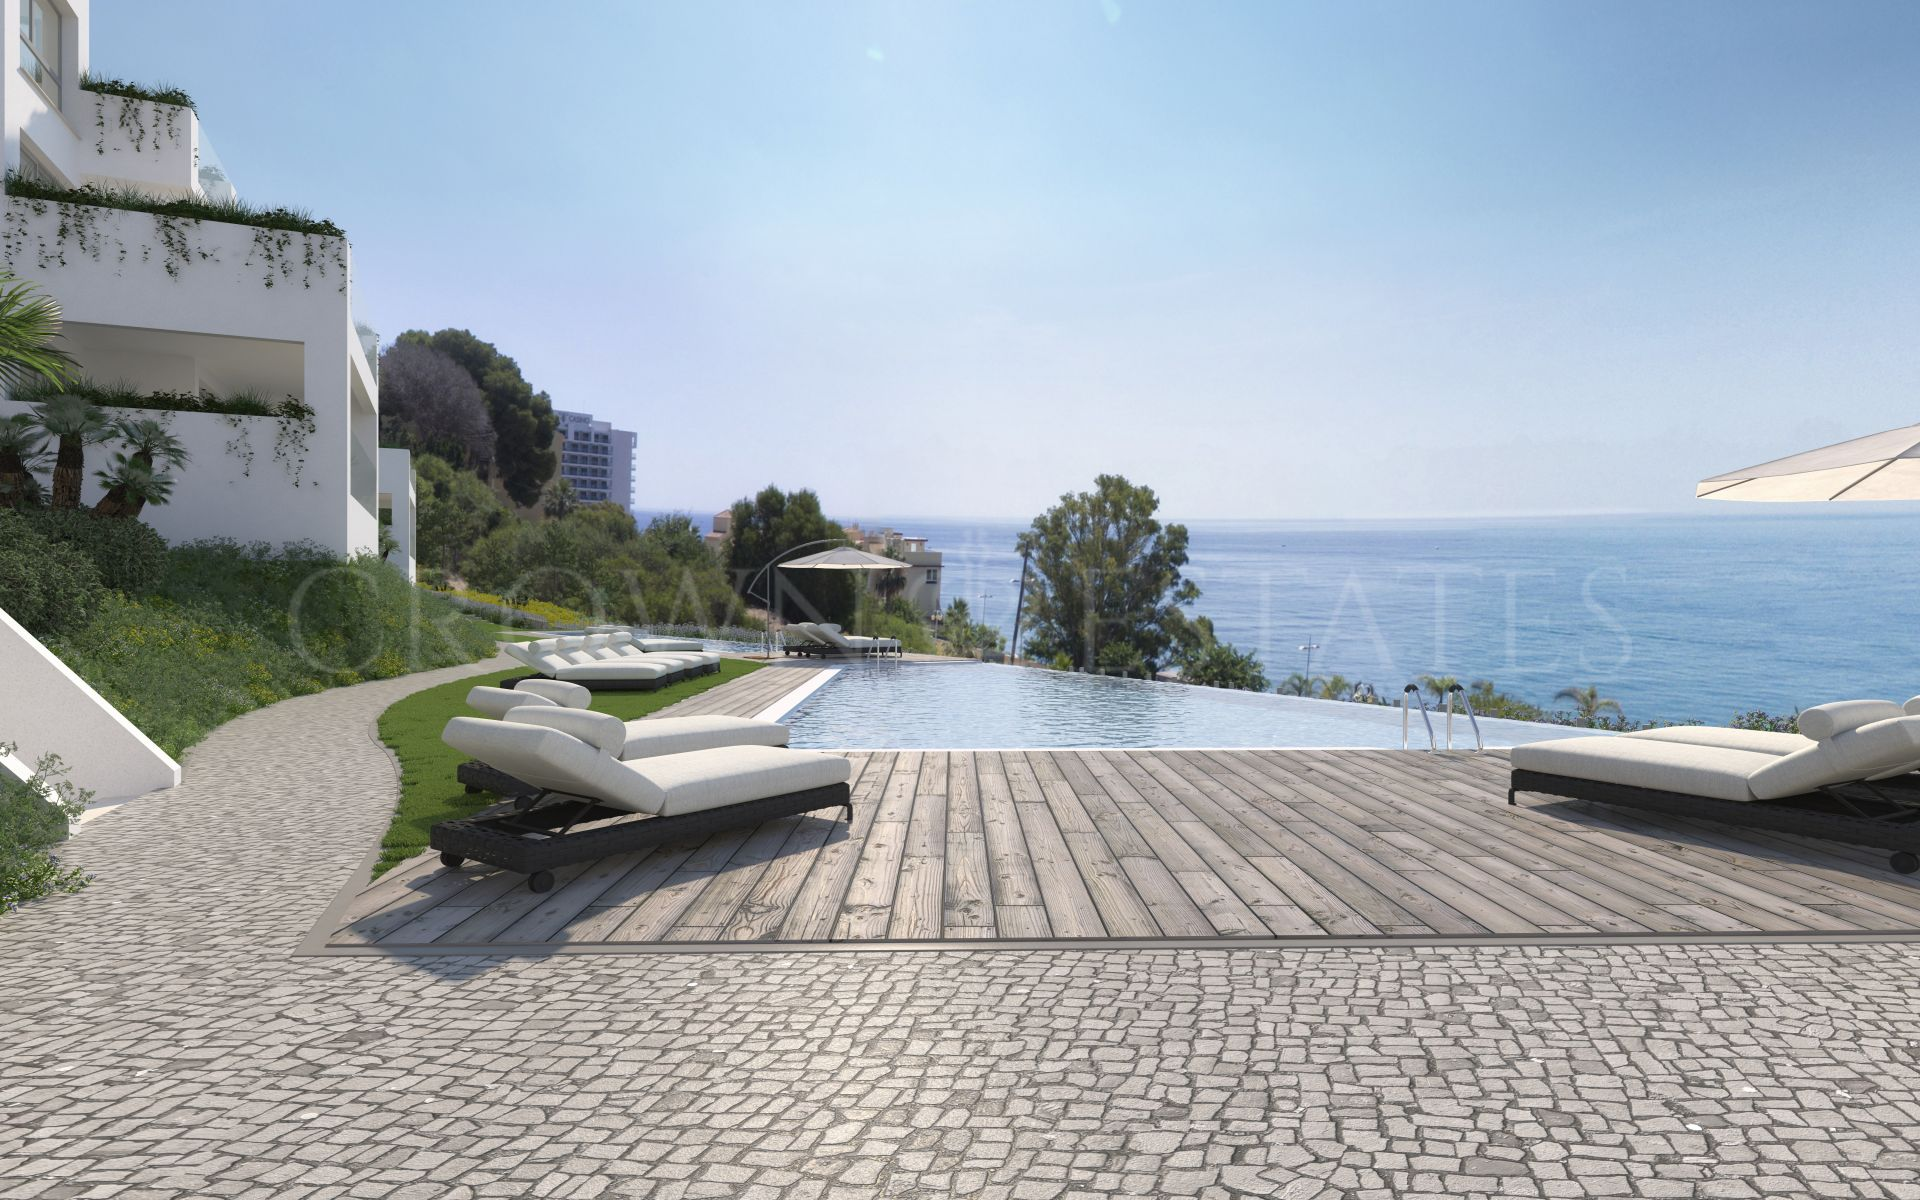 90 contemporary homes with excellent fittings and finishes, and the beach onyour doorstep. 1, 2 and 3 bedrooms with spacious terraces and glass wallsoffering stunning uninterrupted views of the sea.